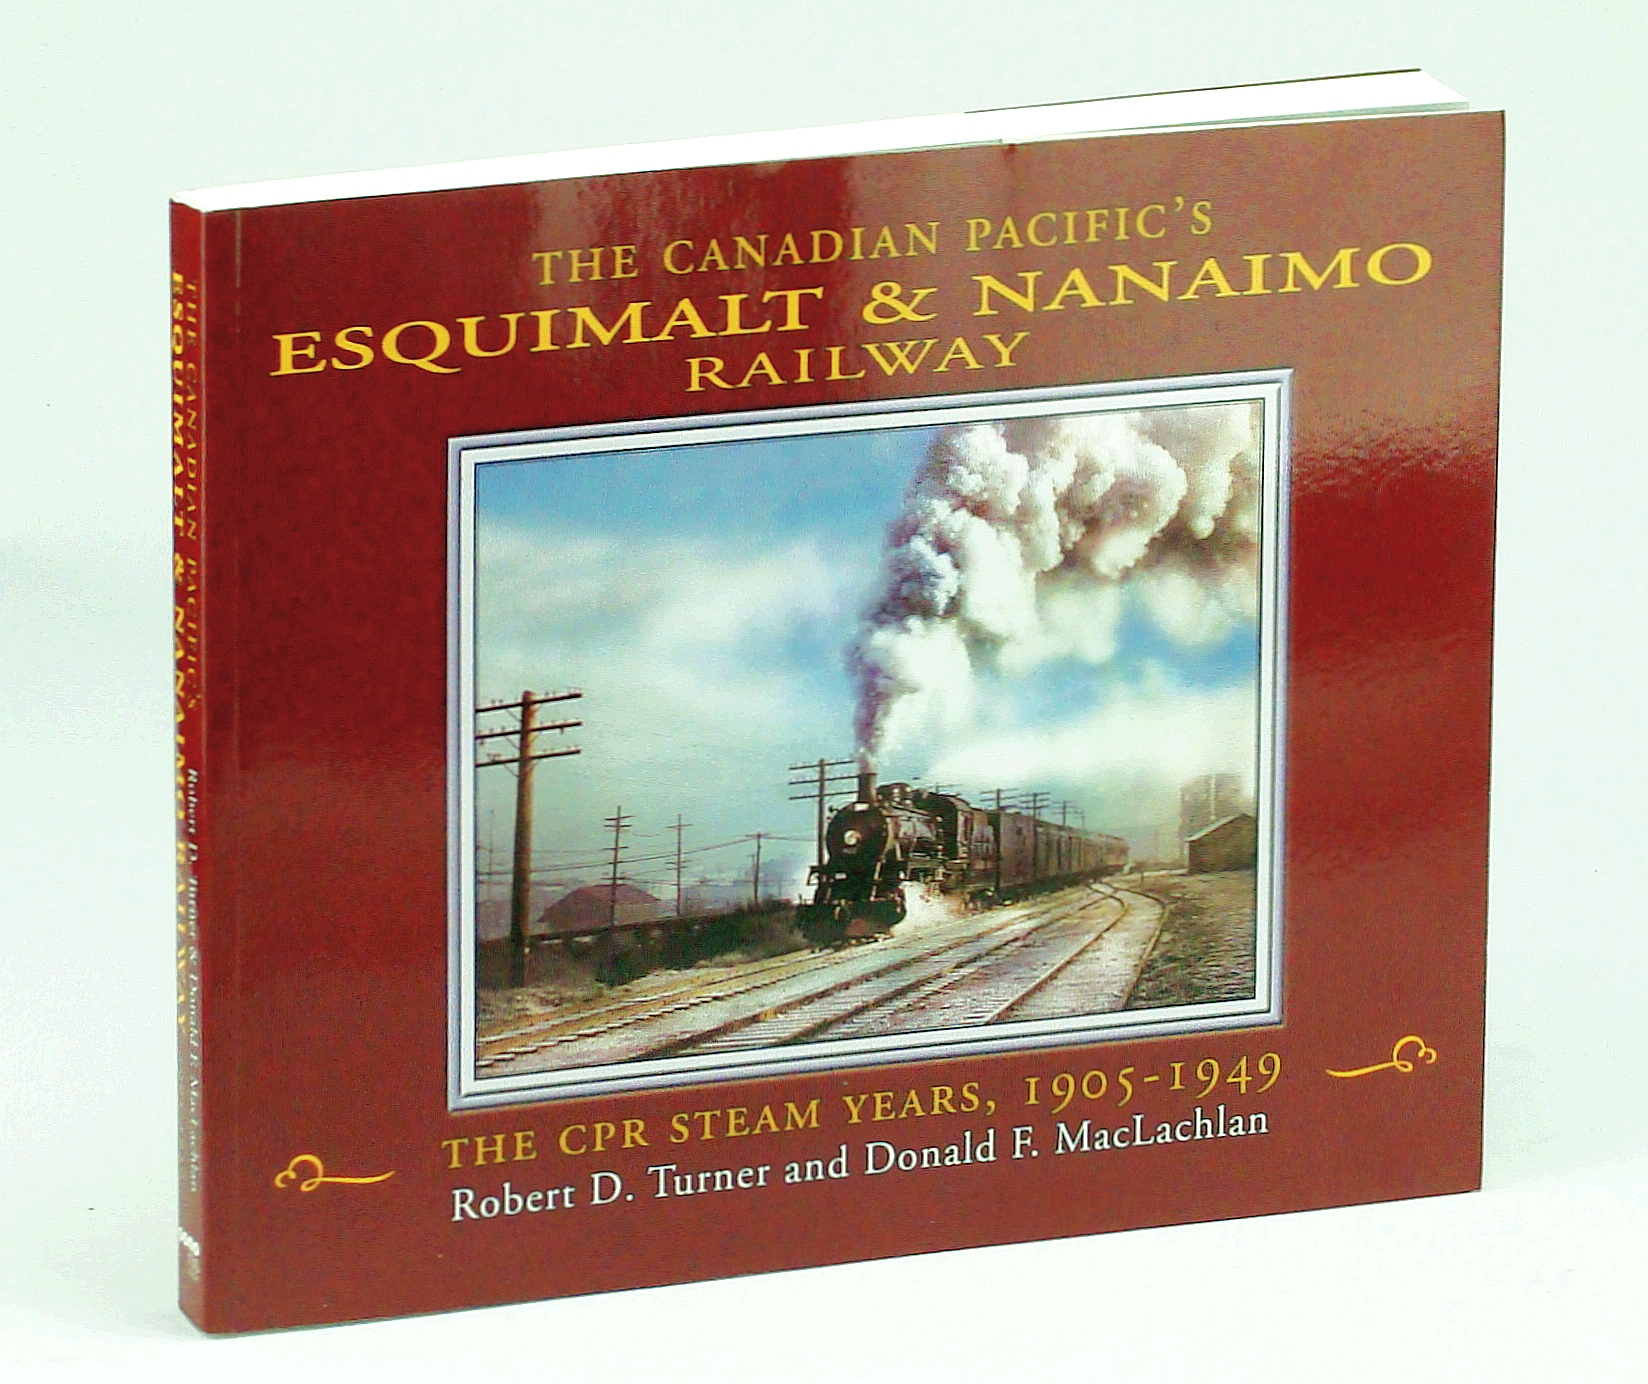 Image for The Canadian Pacific's Esquimalt & Nanaimo Railway: CPR Steam Years, 1905-1949